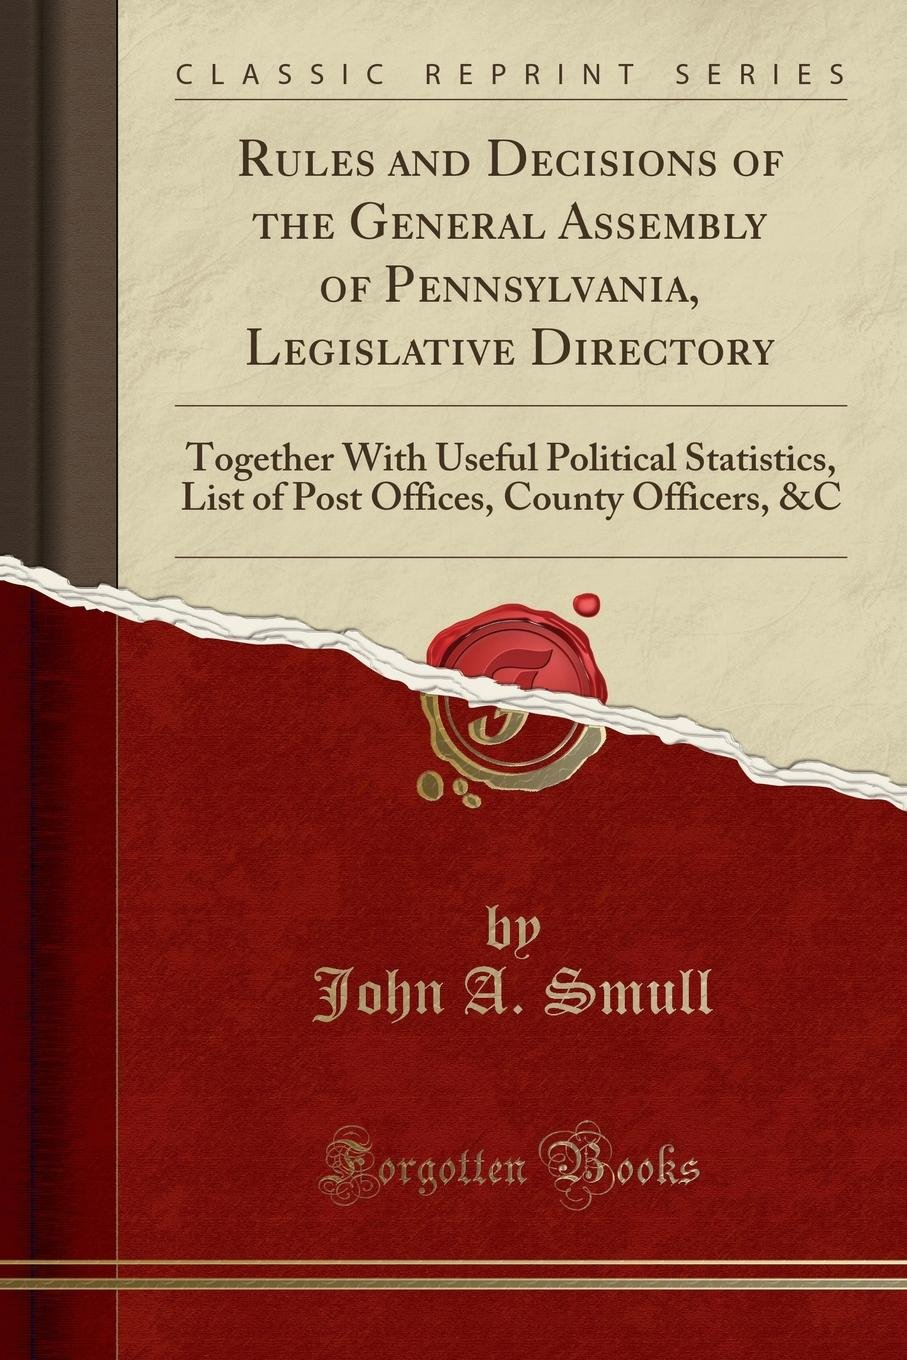 Download Rules and Decisions of the General Assembly of Pennsylvania, Legislative Directory: Together With Useful Political Statistics, List of Post Offices, County Officers, &C (Classic Reprint) ebook